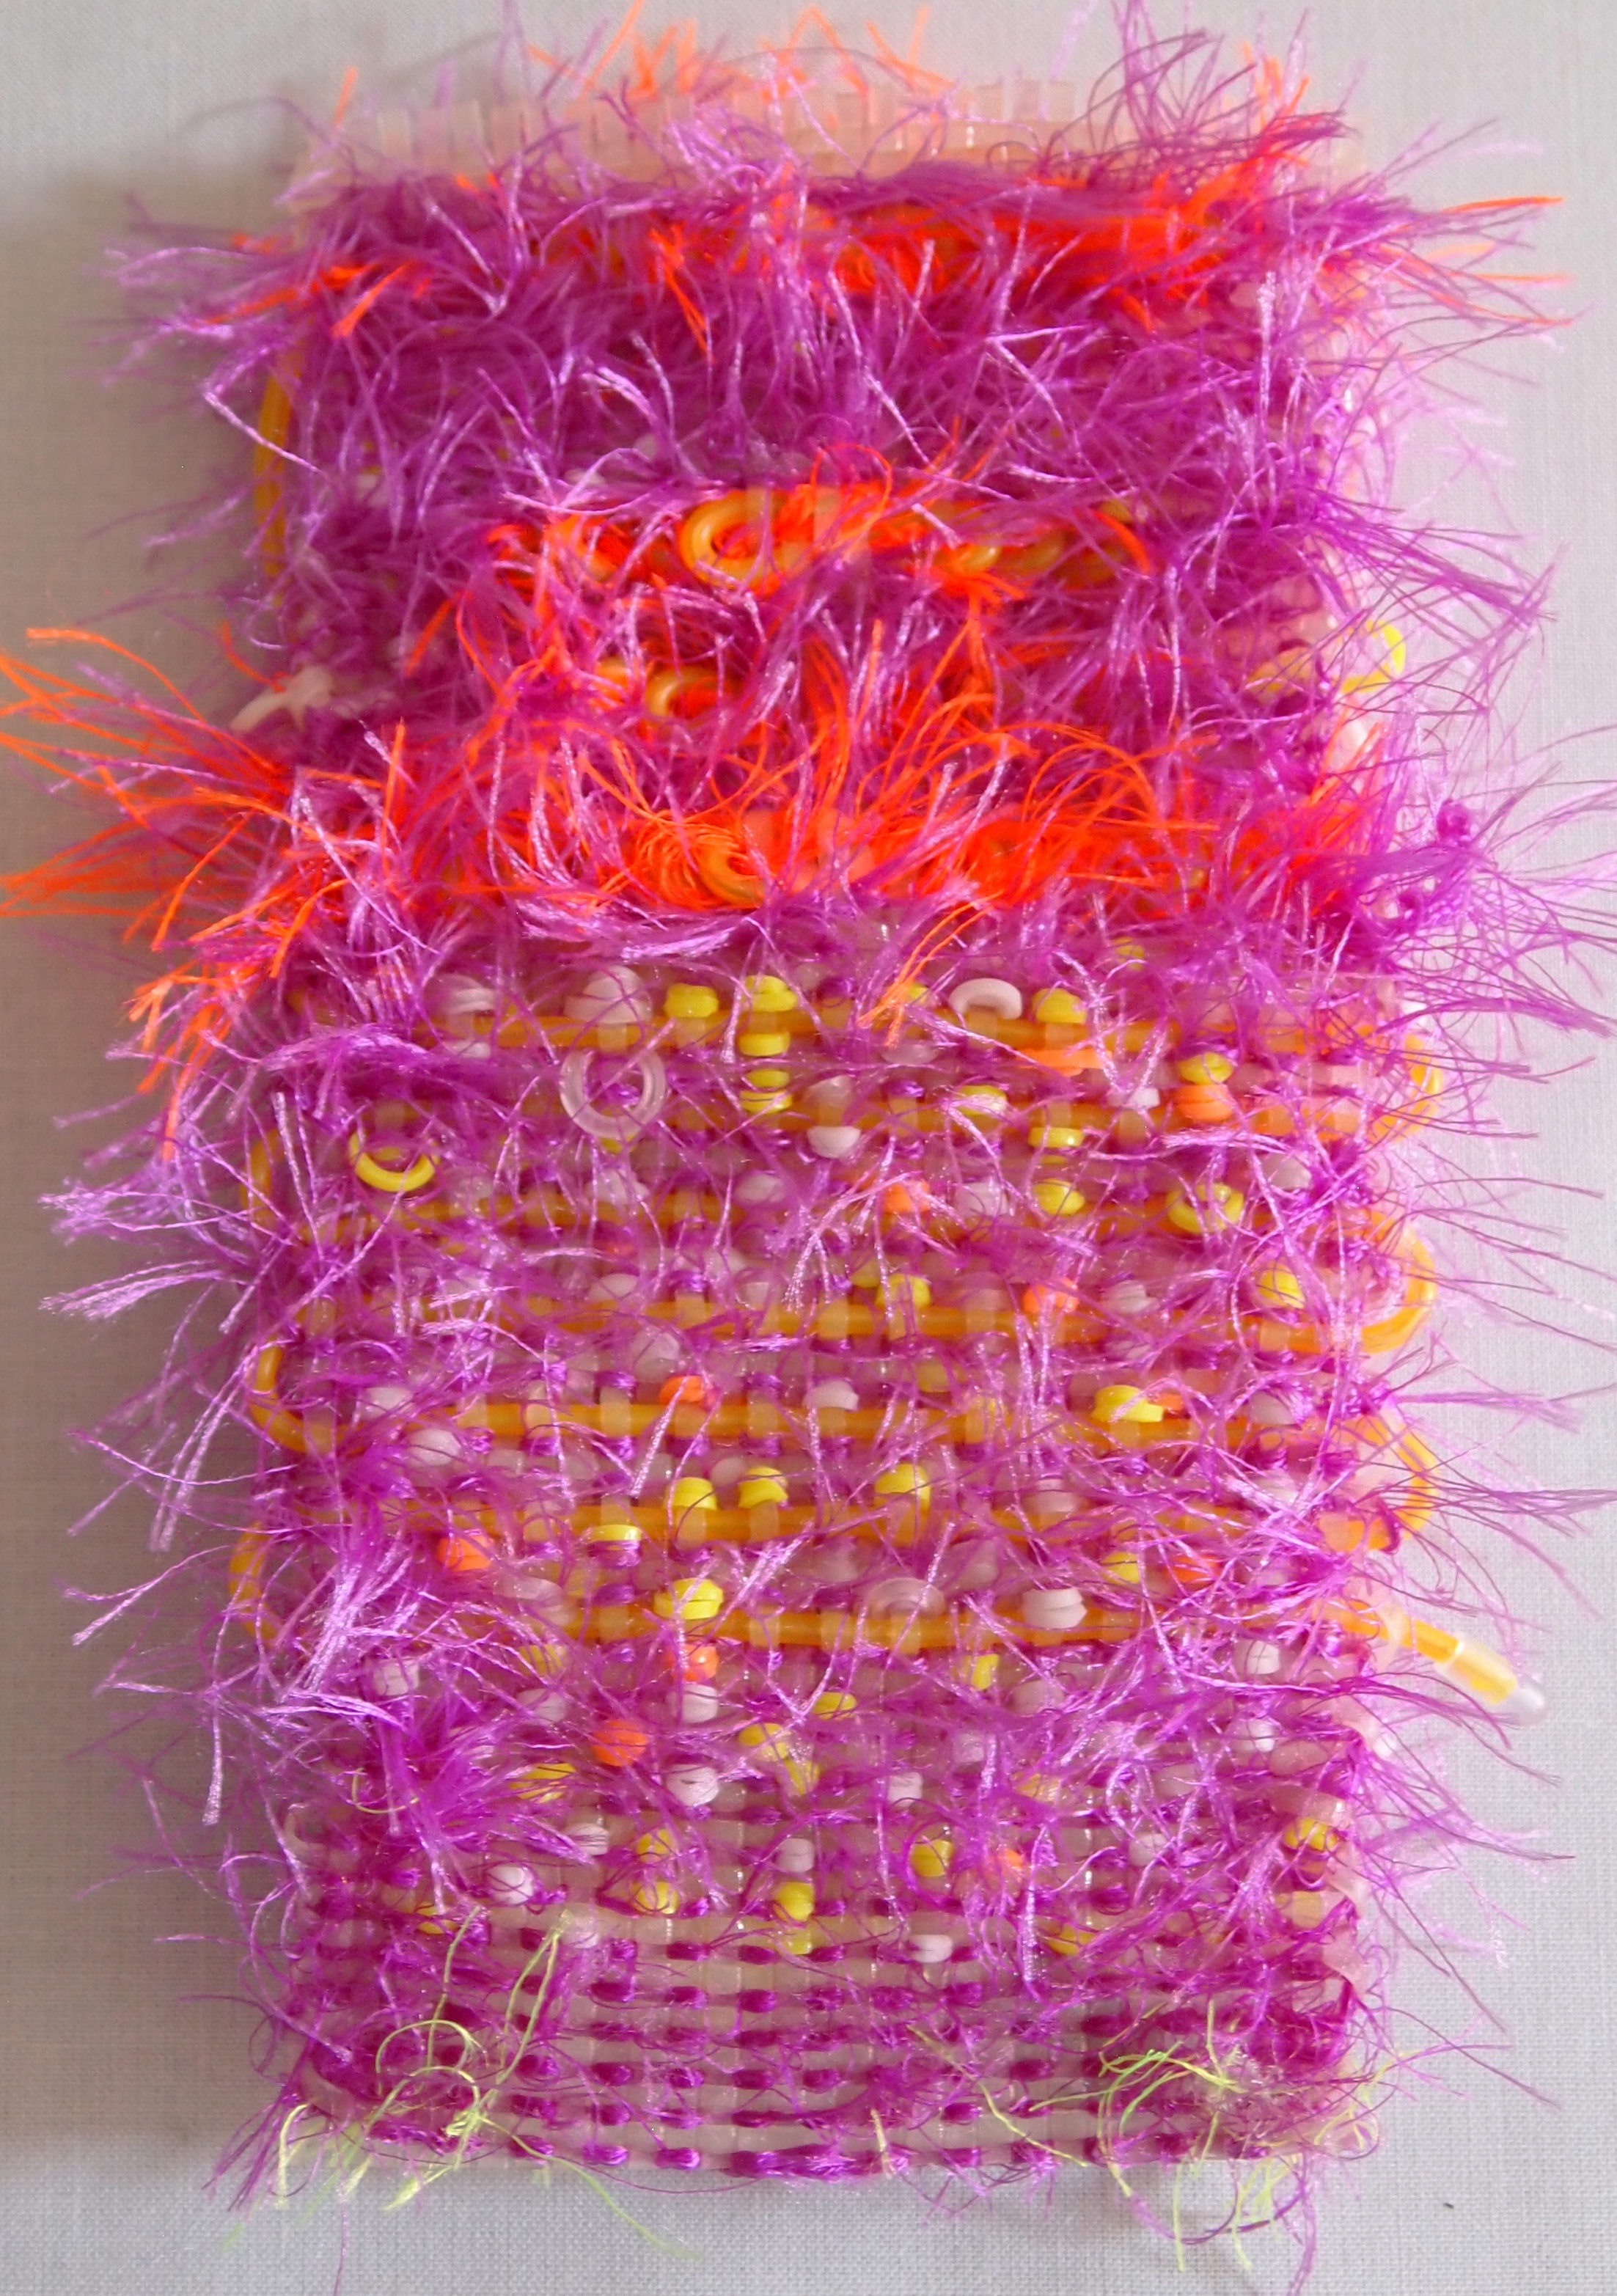 Hand Woven  Glow-in-the-dark Plastic Lacing,Monofilament, Rubber Bands, LED Wire